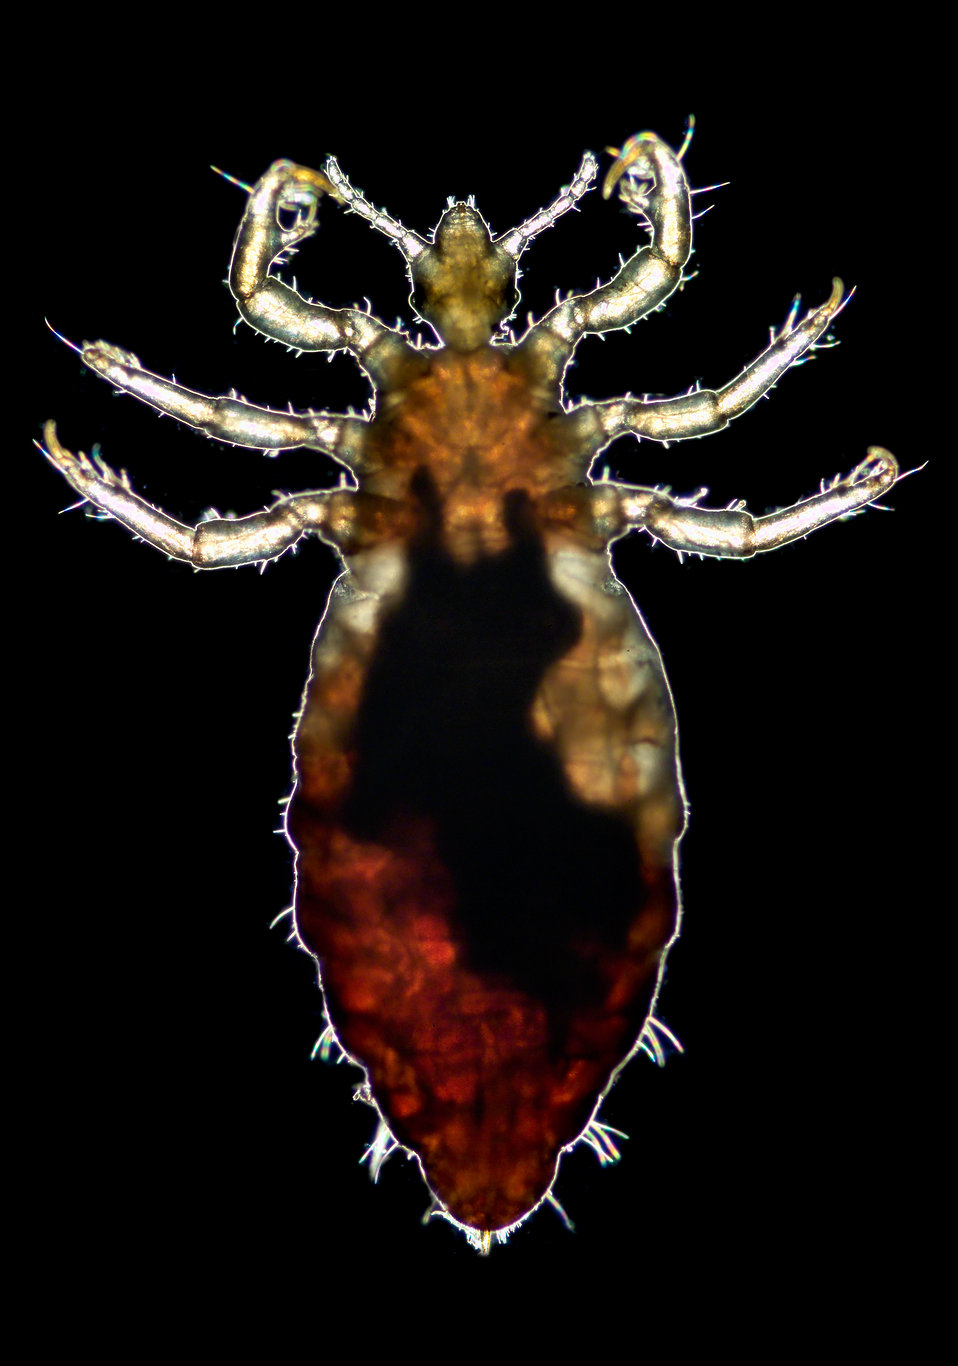 This 2006 photograph depicted a ventral view of a male body louse, Pediculus humanus var. corporis. Its counterpart, the dorsal view may be